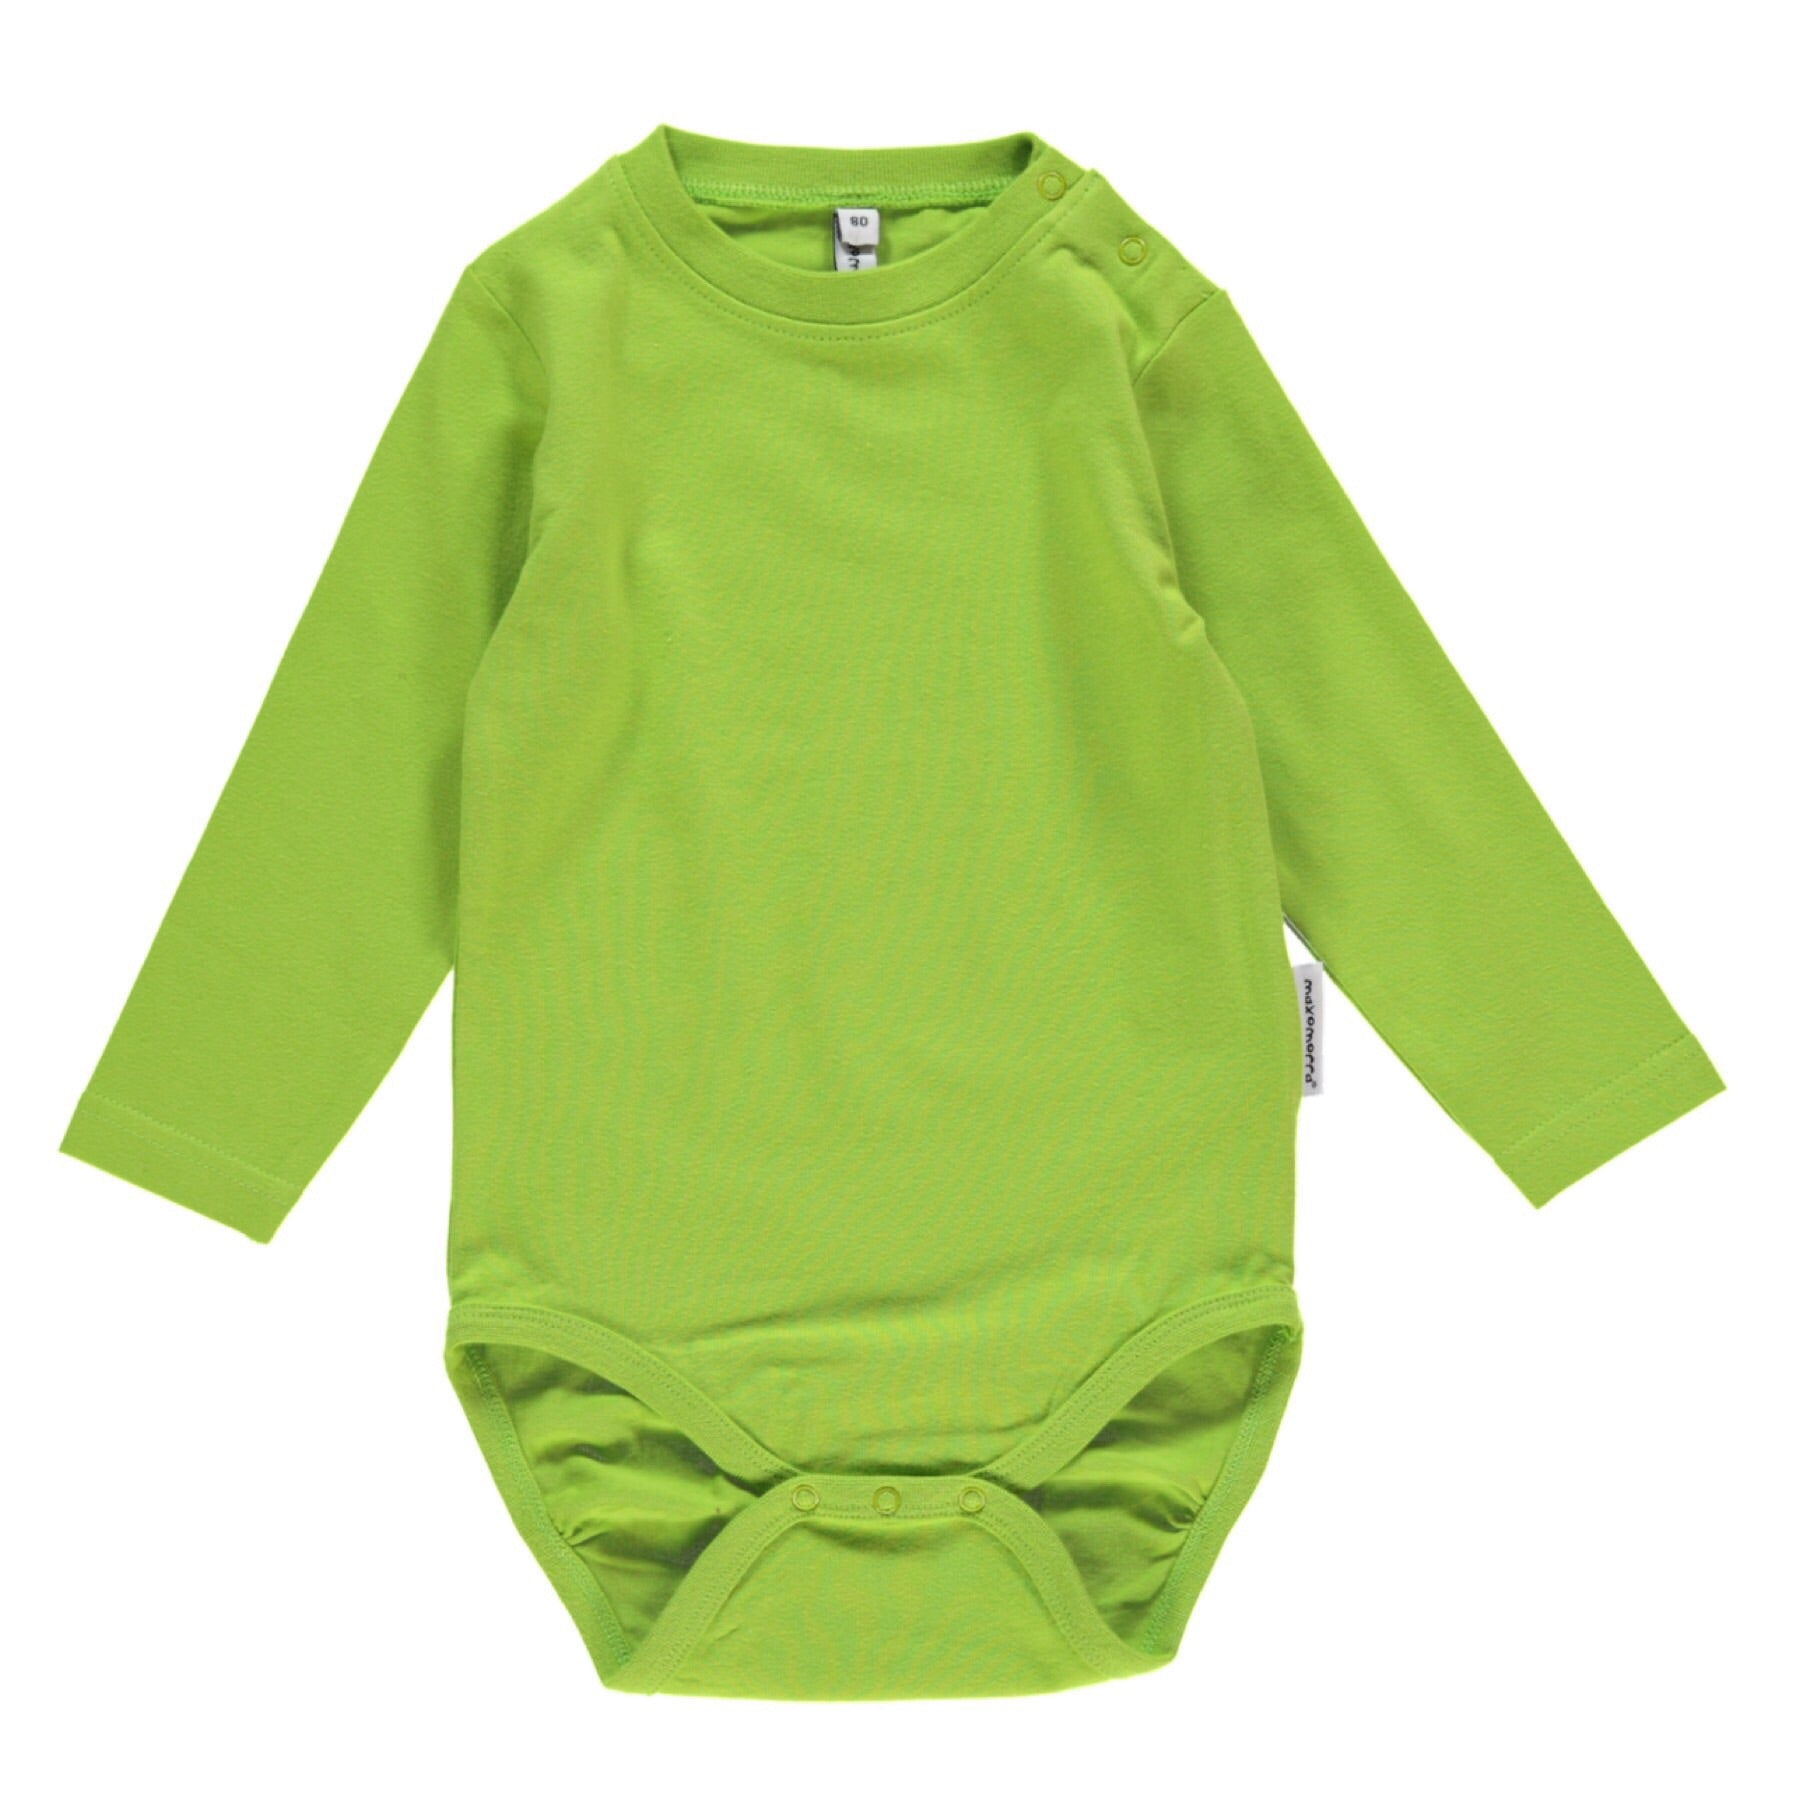 Maxomorra Body LS Bright Green (56) - little-tiger-togs